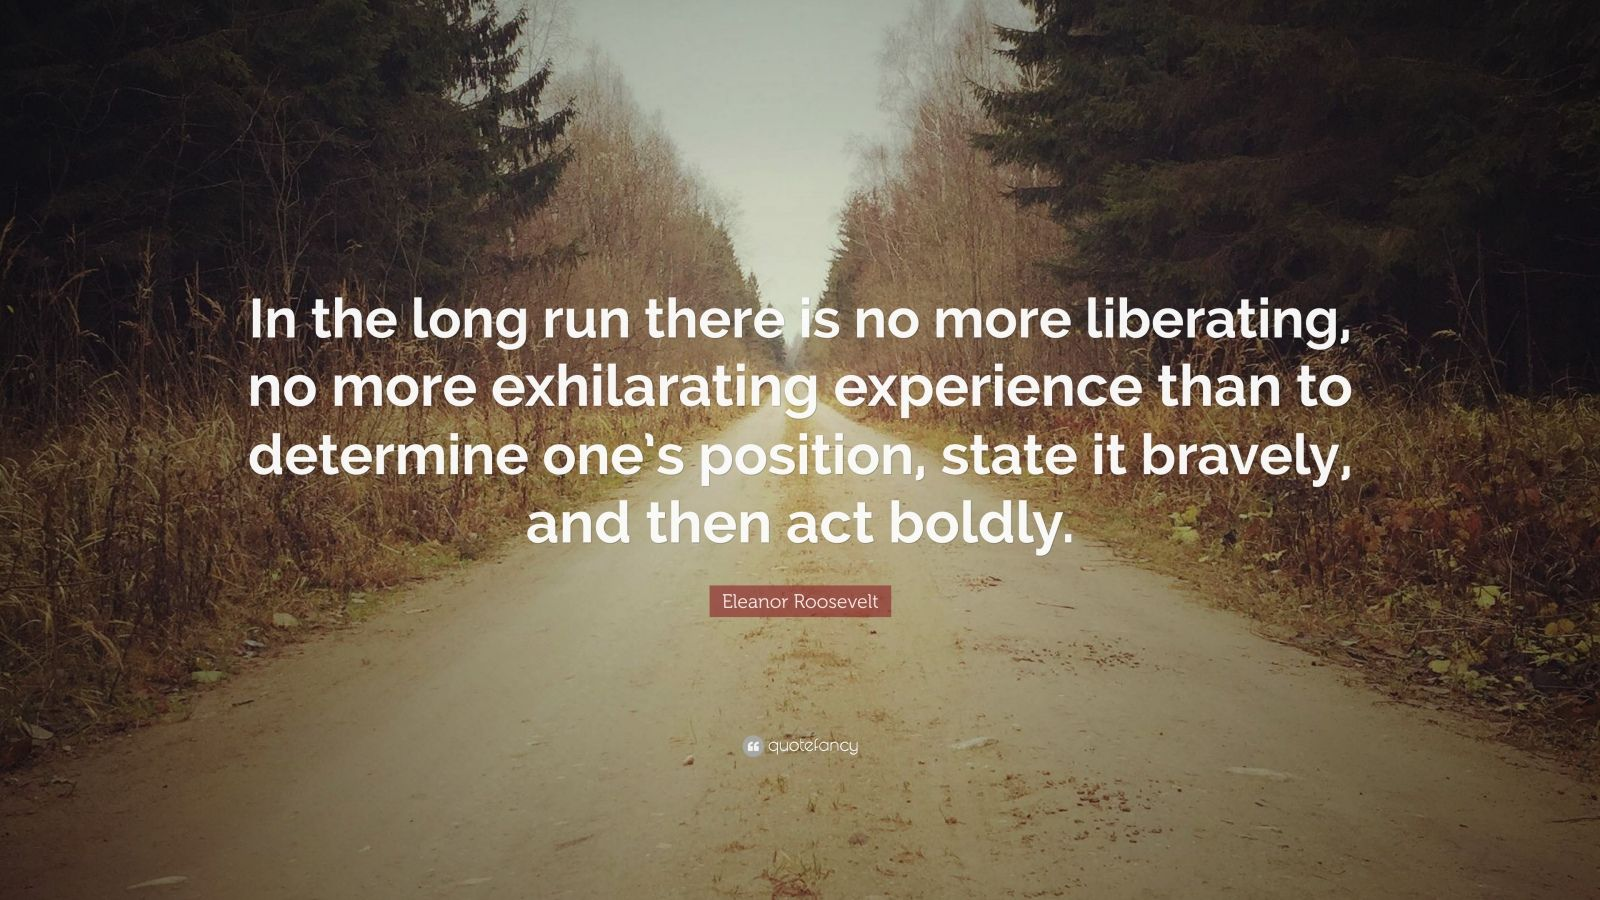 """Eleanor Roosevelt Quote: """"In the long run there is no more liberating, no more exhilarating experience than to determine one's position, state it bravely, and then act boldly."""""""